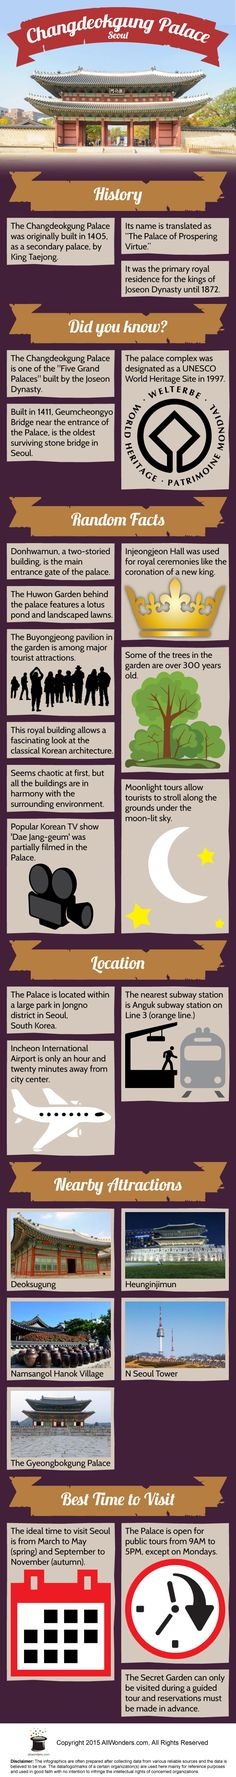 Changdeokgung Palace Infographic